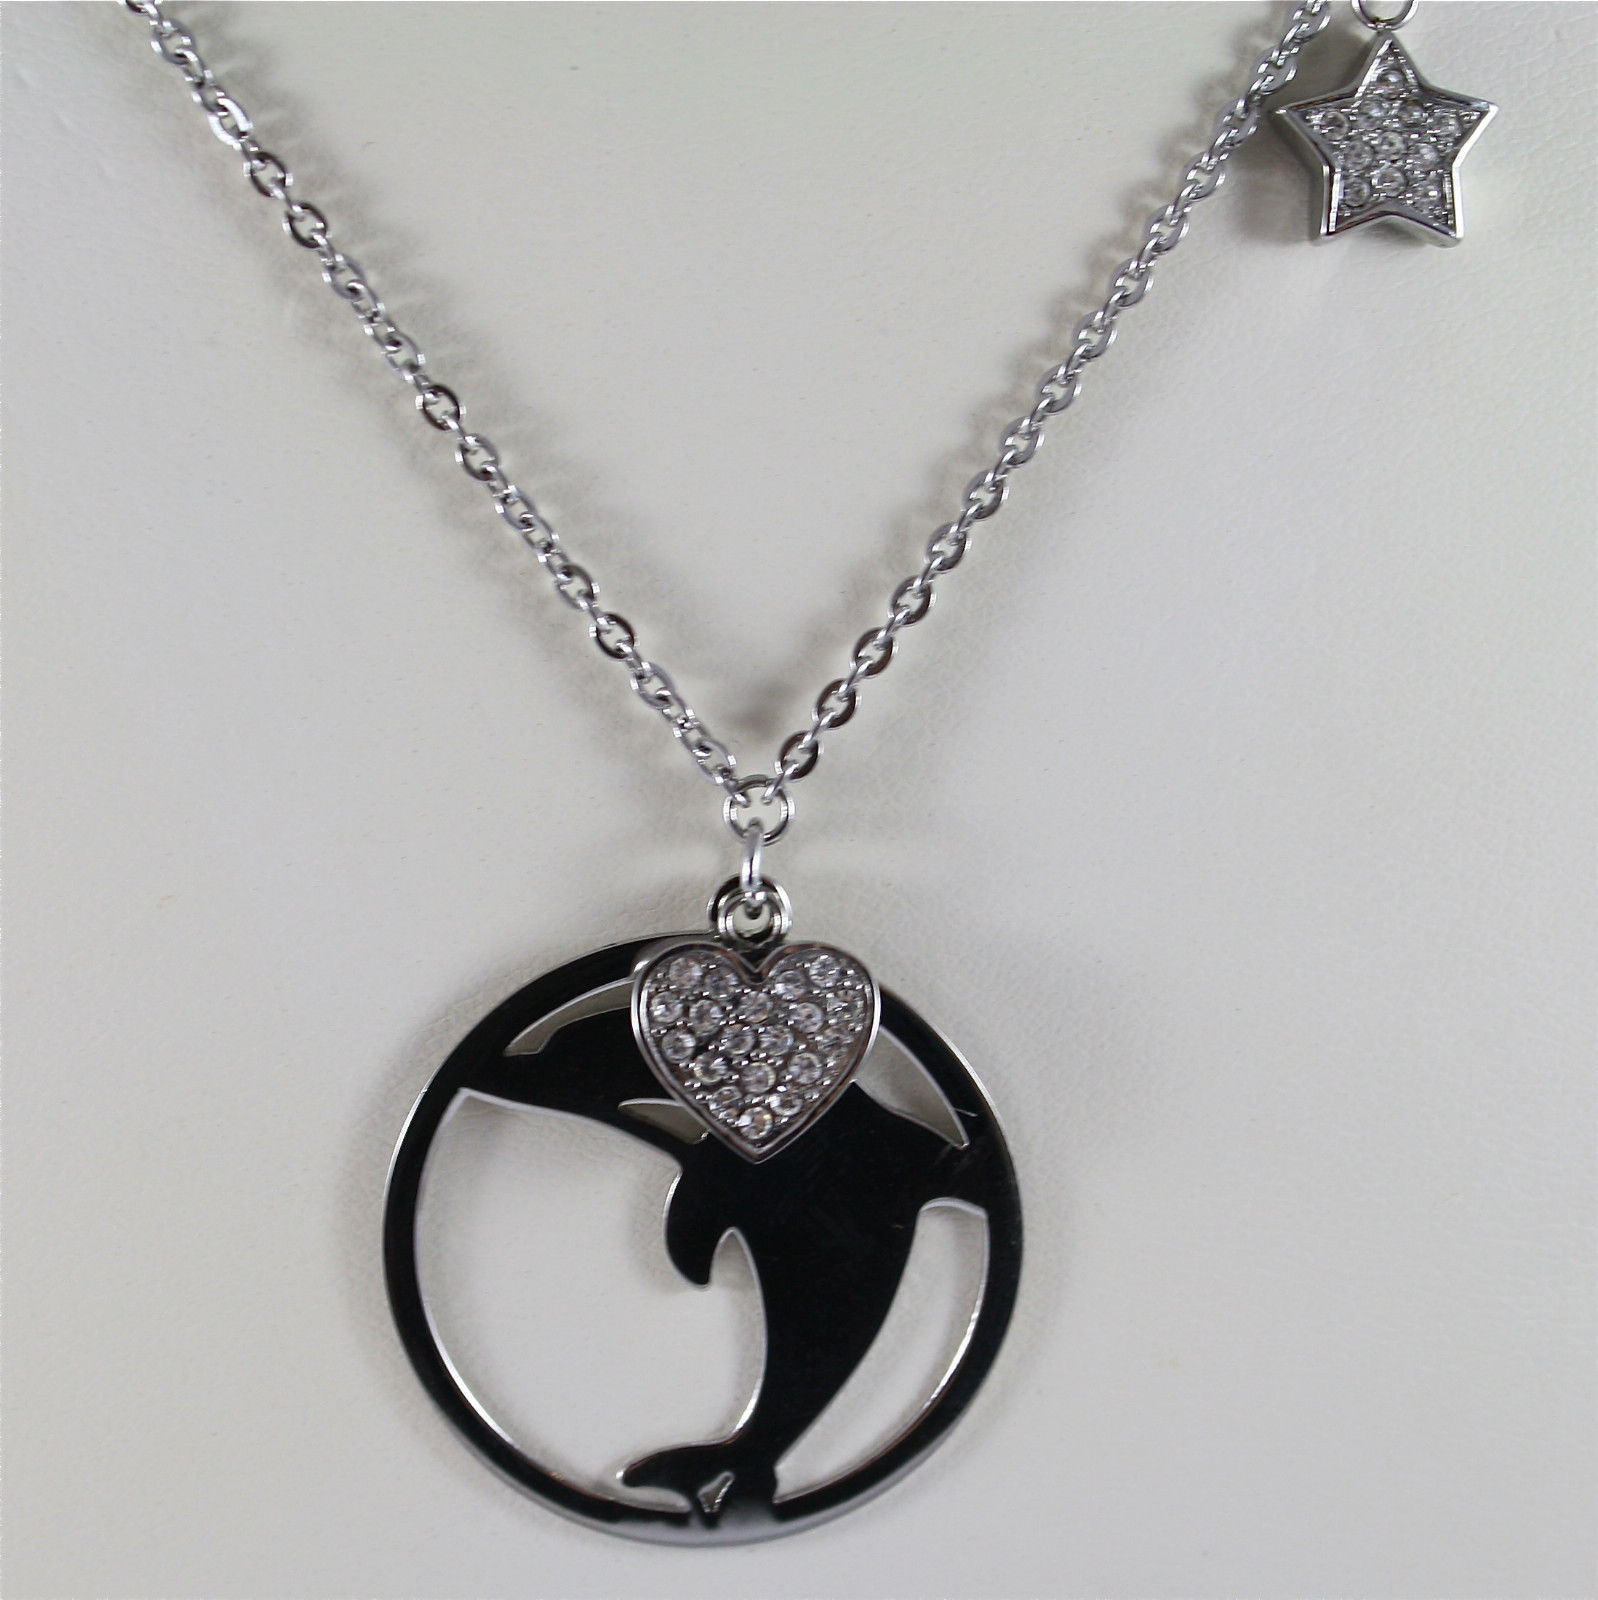 S'AGAPO' NECKLACE, 316L STEEL, DOLPHIN AND HEART, CHARMS, FACETED CRYSTALS.